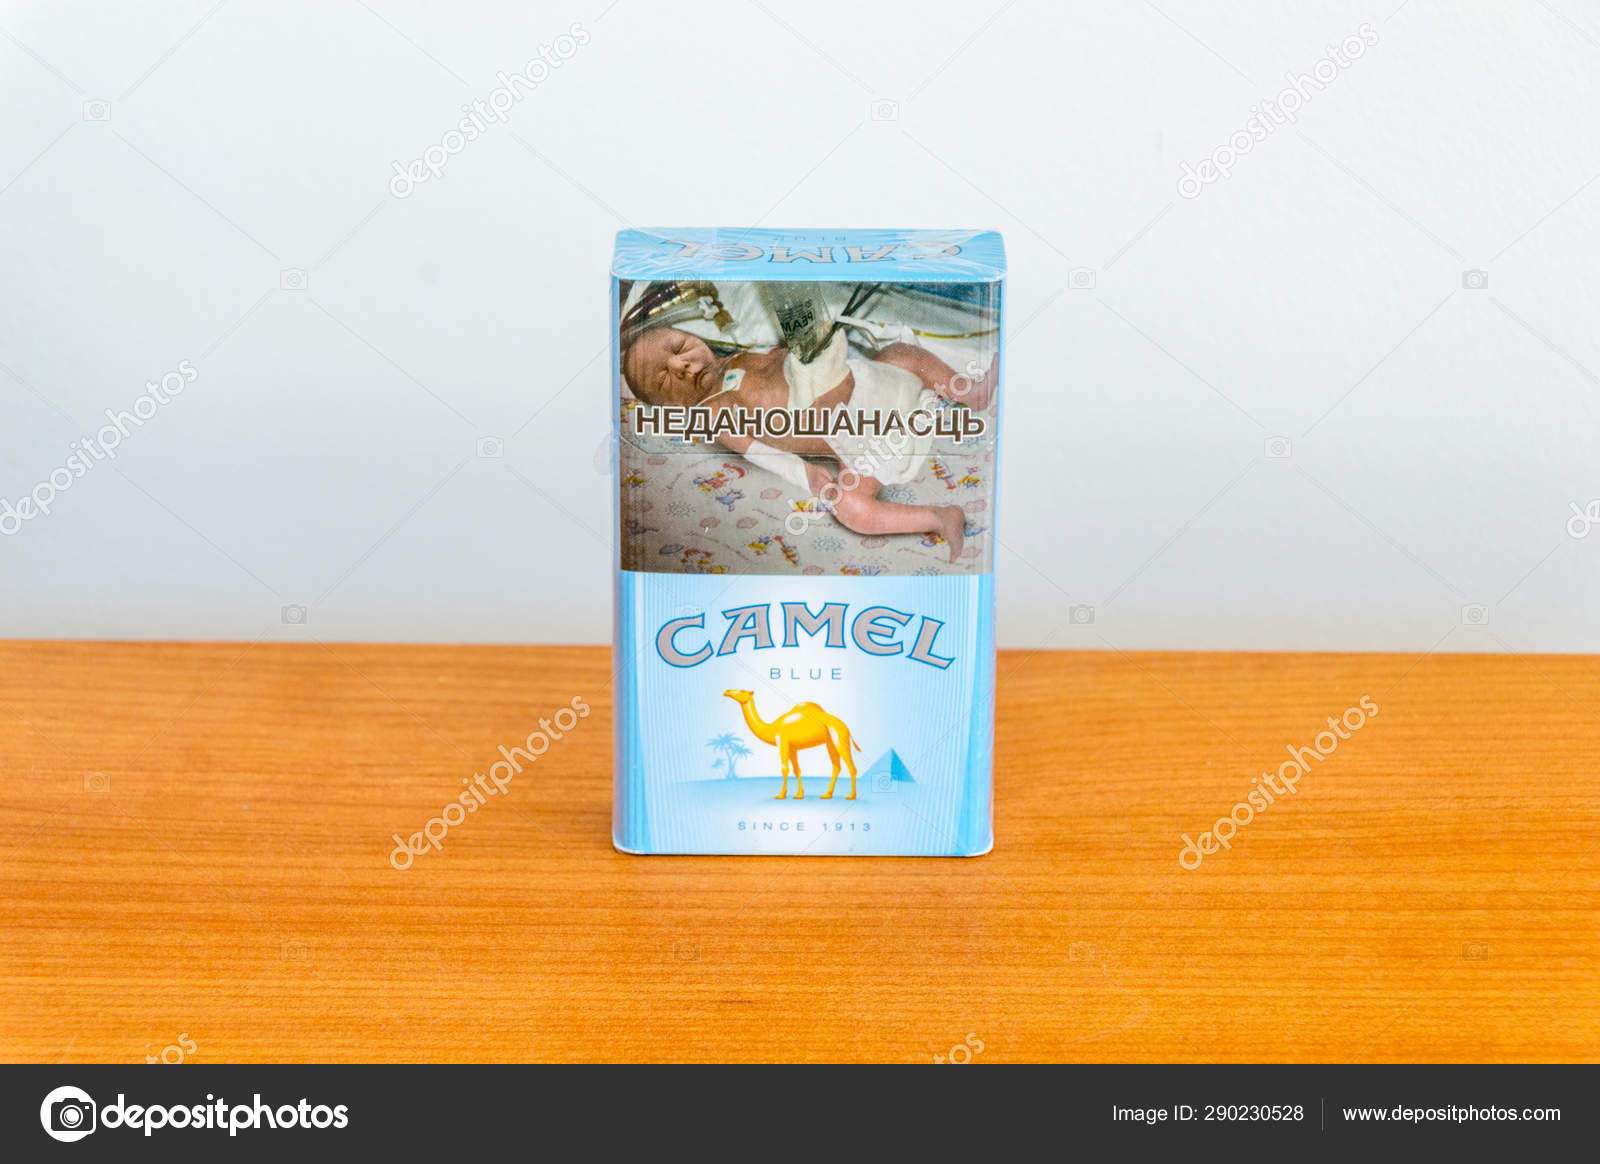 Camel Blue Pack Of Cigarettes On Wooden Table Stock Editorial Photo C Robson90 290230528